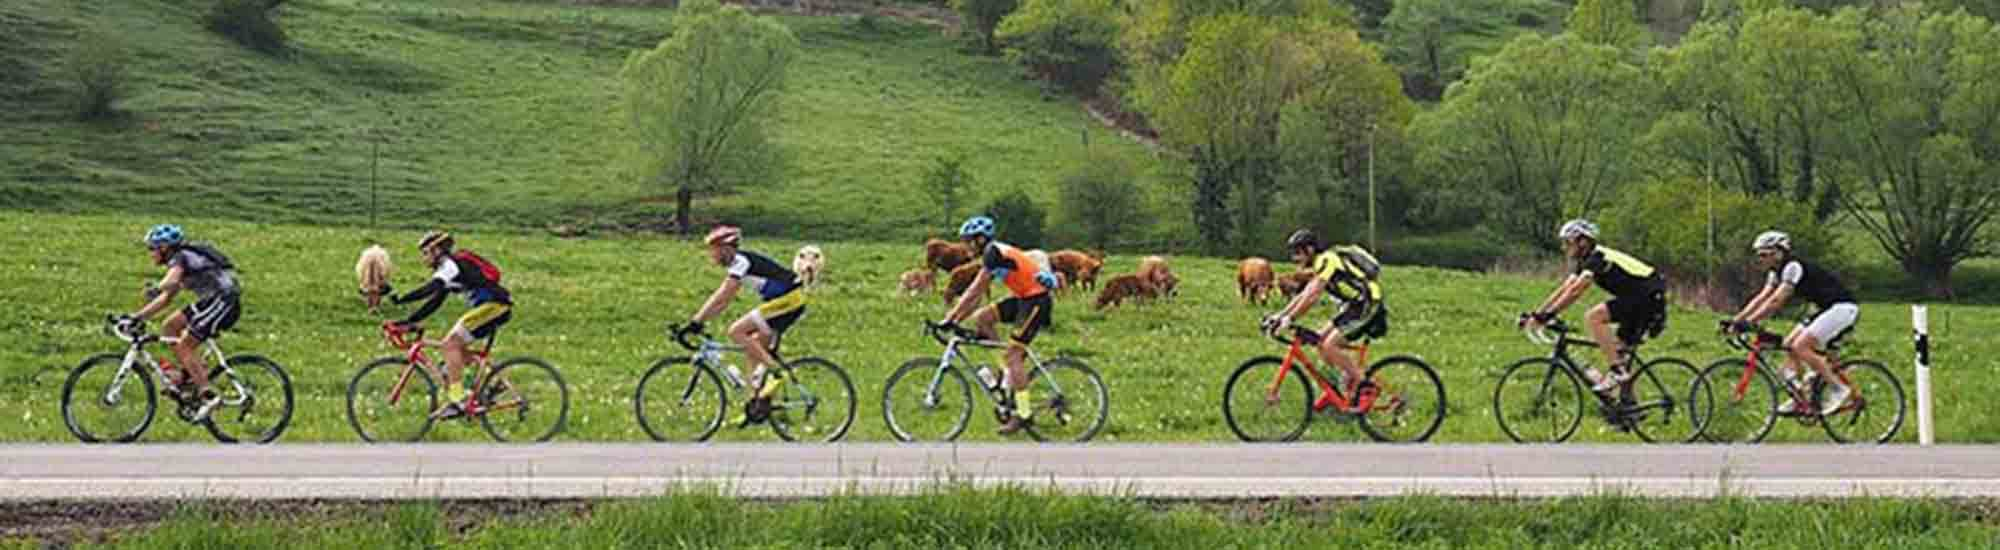 Bespoke Cycling - Tuscany Weekend - 20/6/19-23/6/19 - £1700